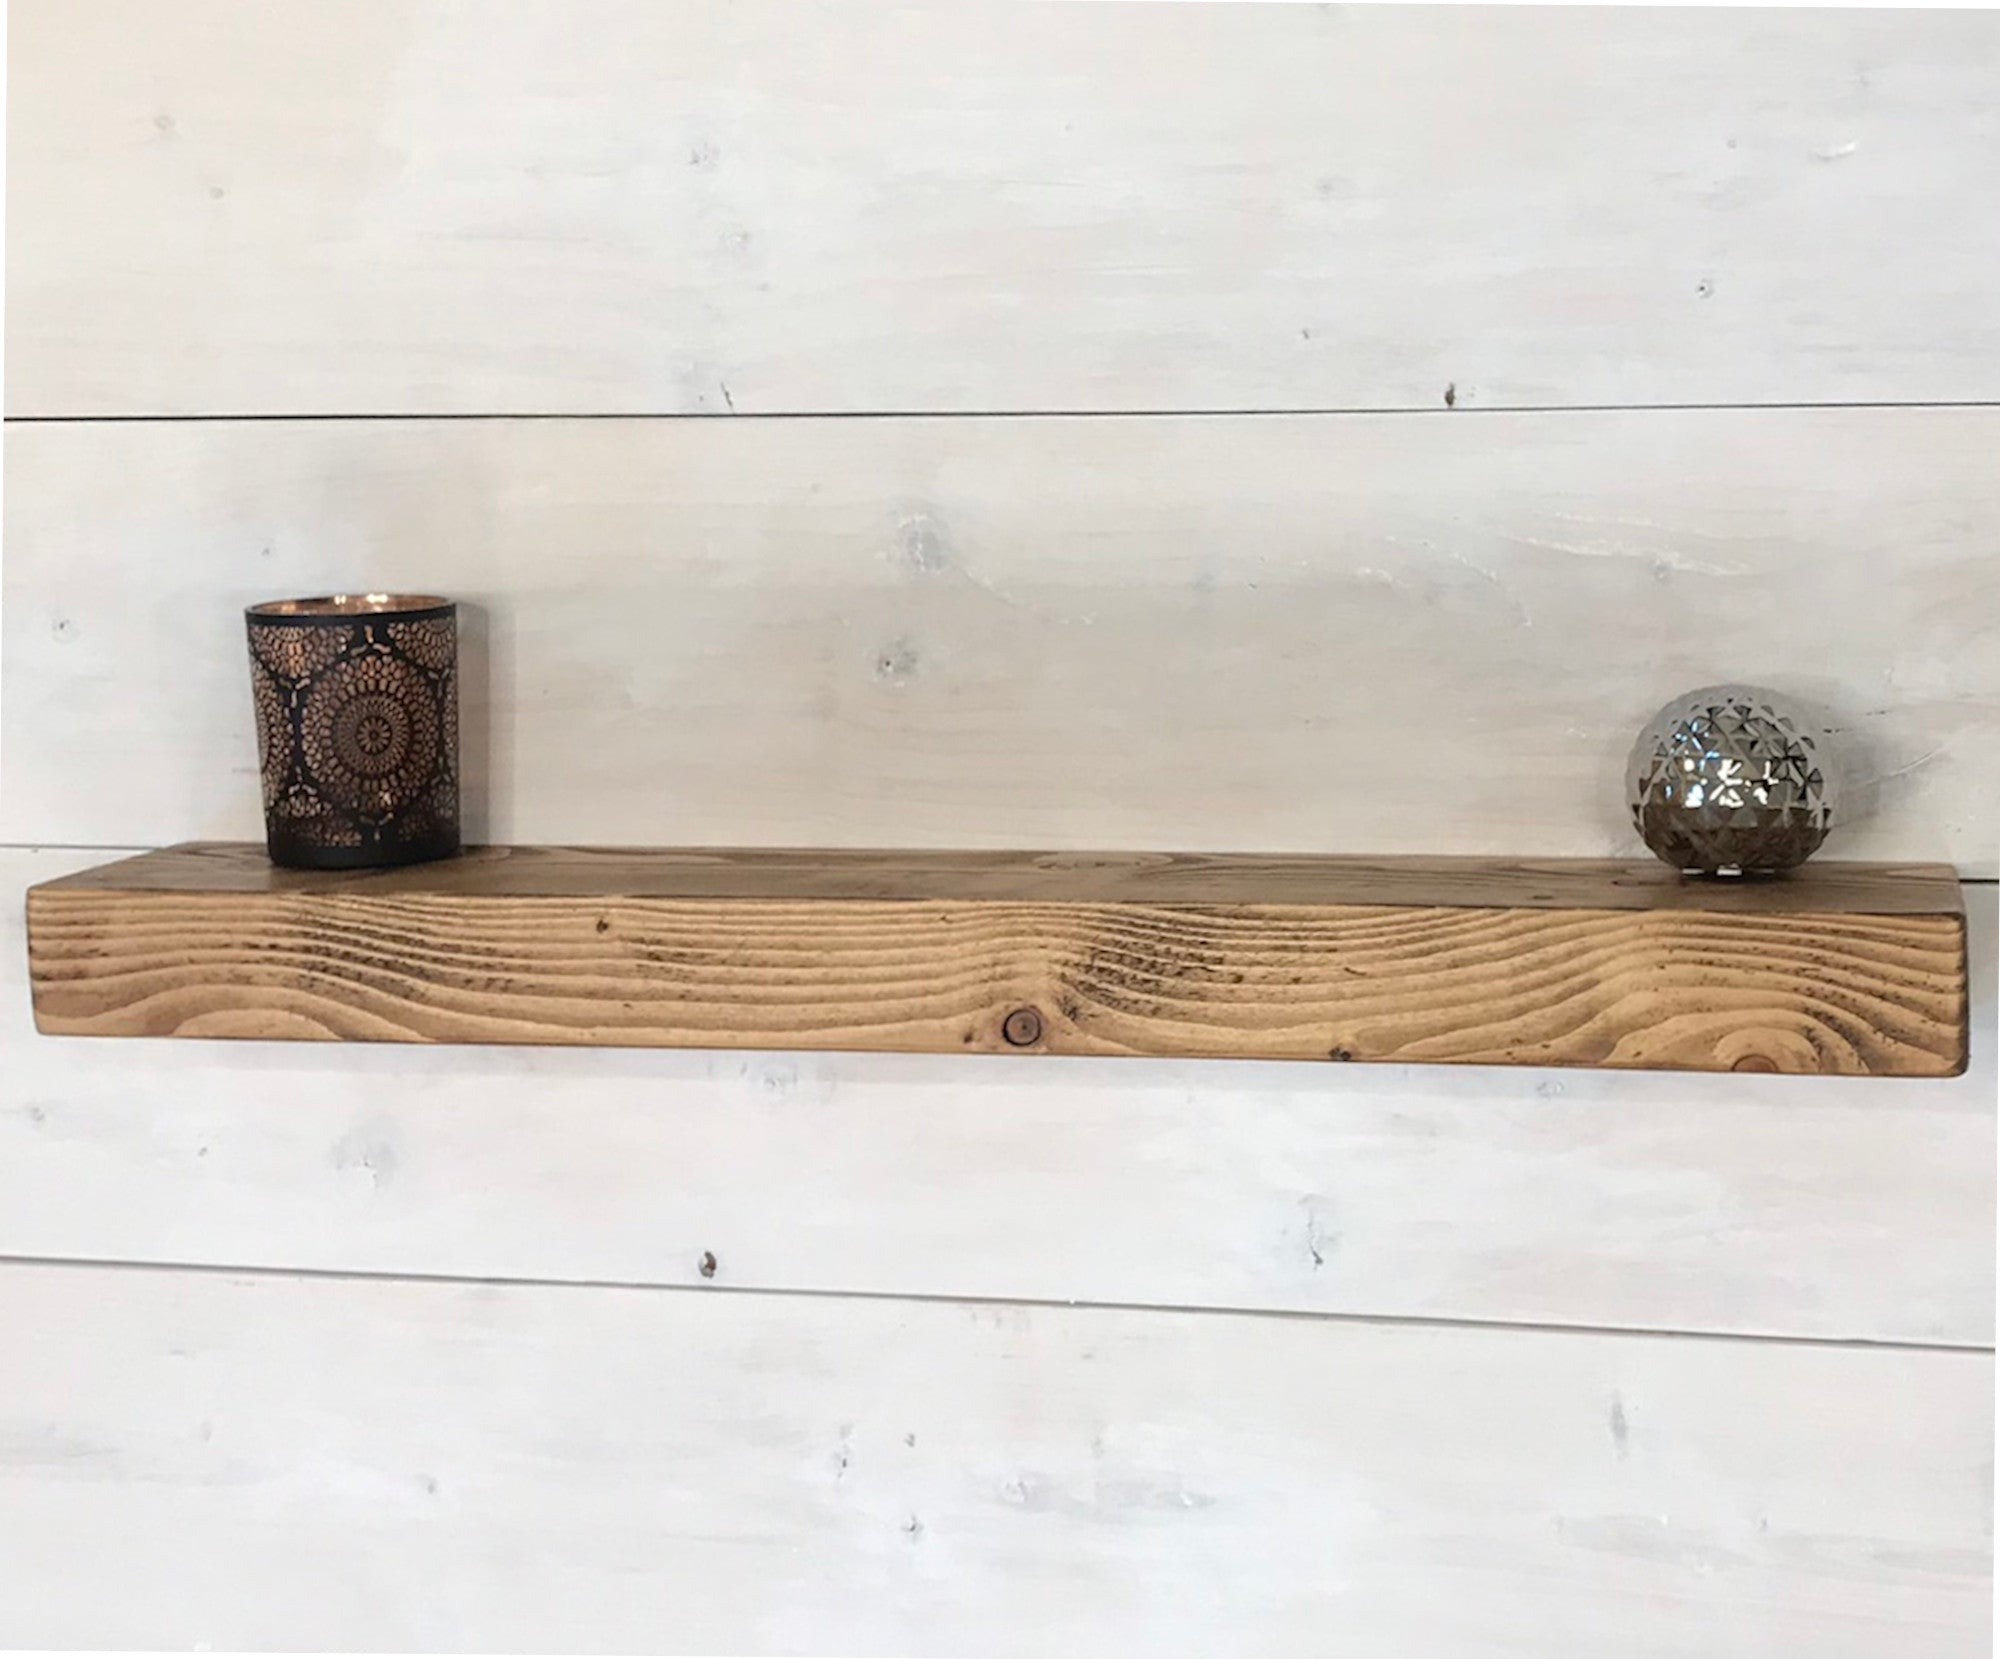 rustic floating shelves industrial 6 15cm deep wood chic shelf brackets floating 70mm thick